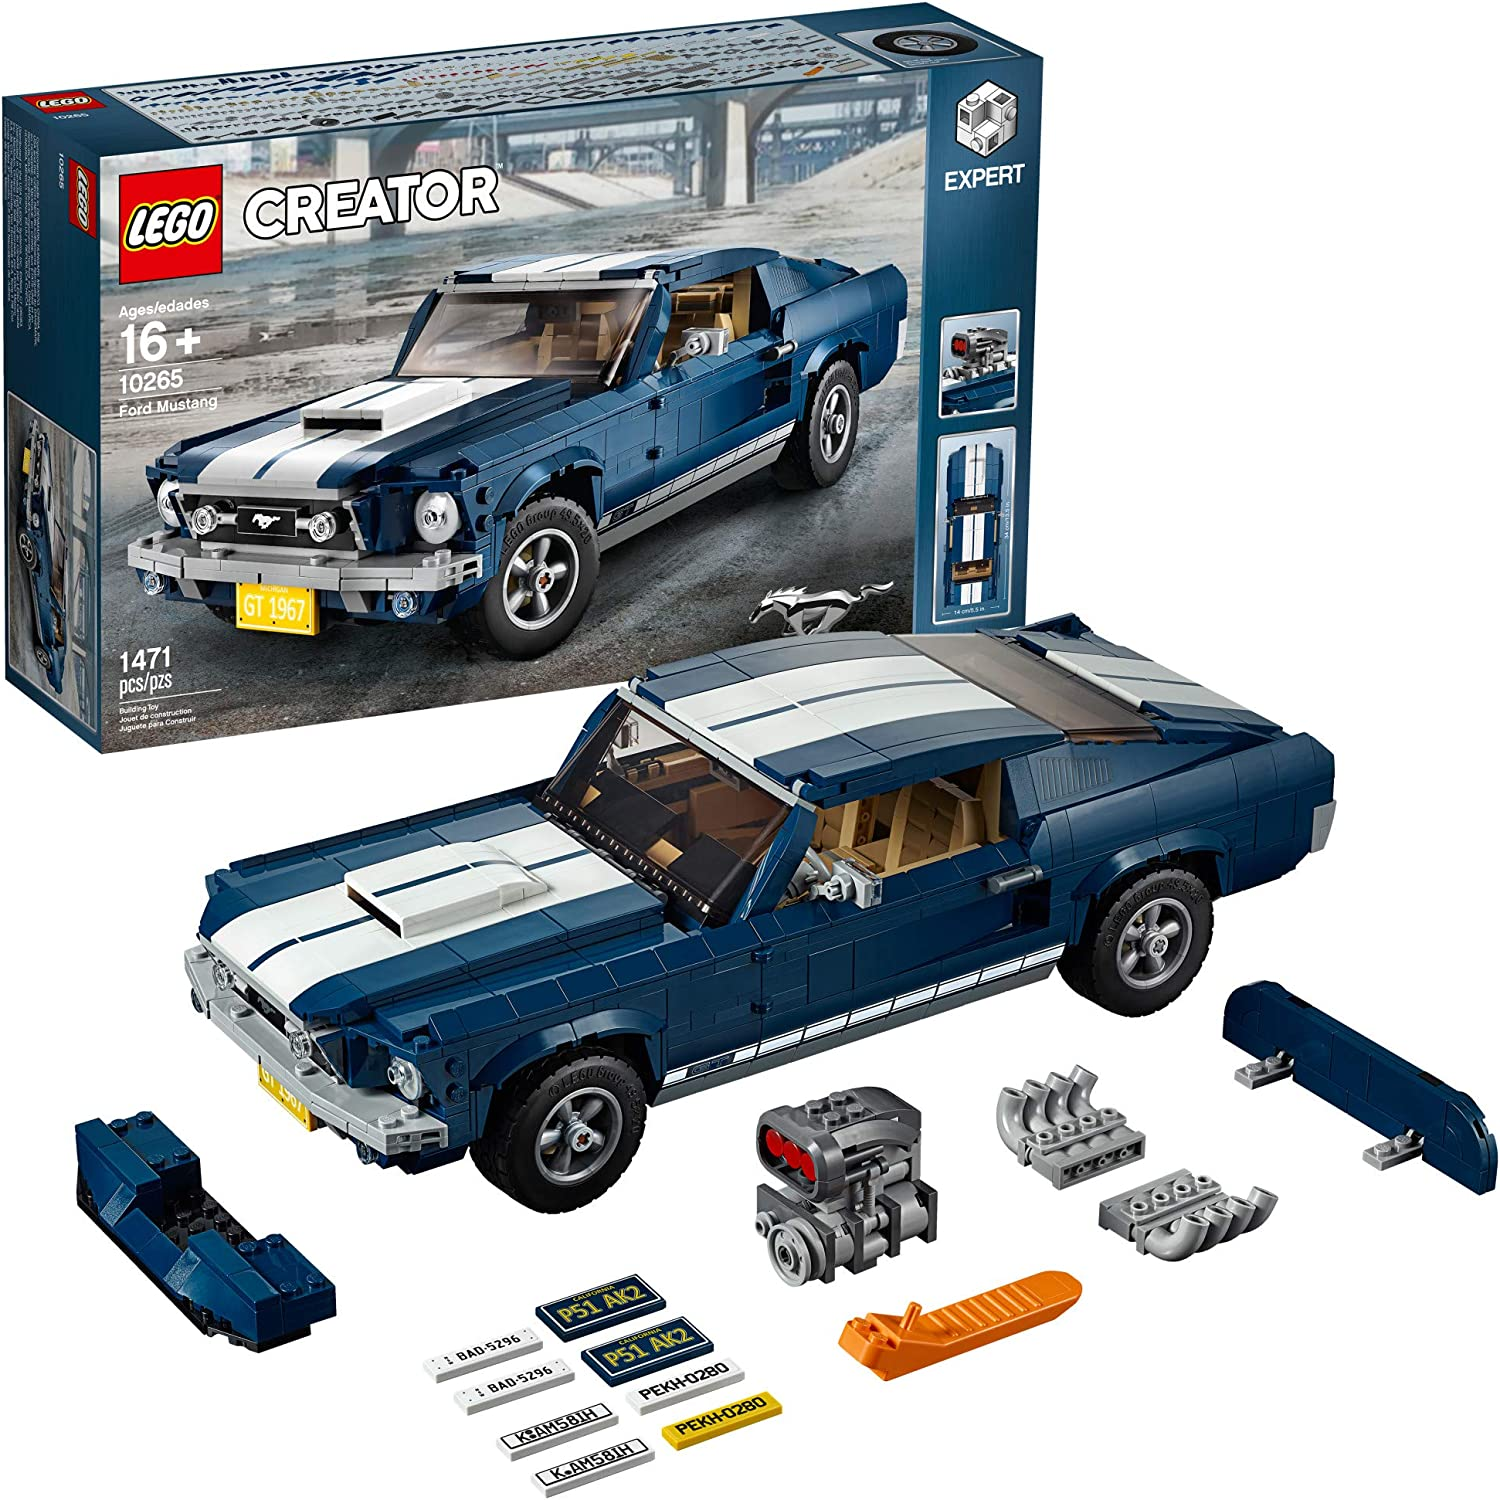 Amazon Com Lego Creator Expert Ford Mustang 10265 Building Kit 1471 Pieces Toys Games